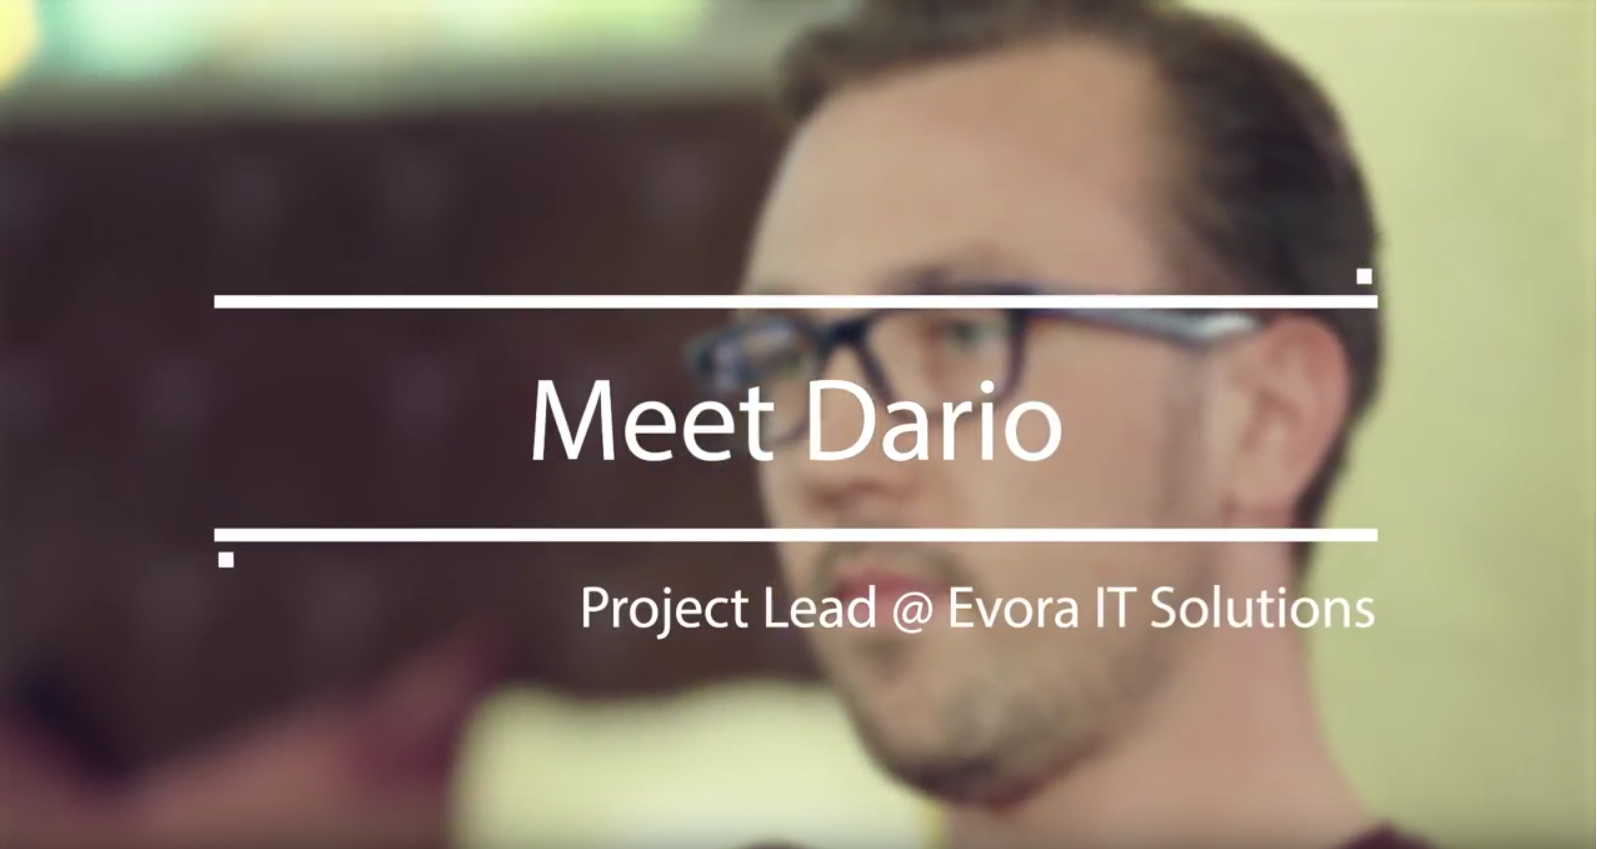 Project Lead